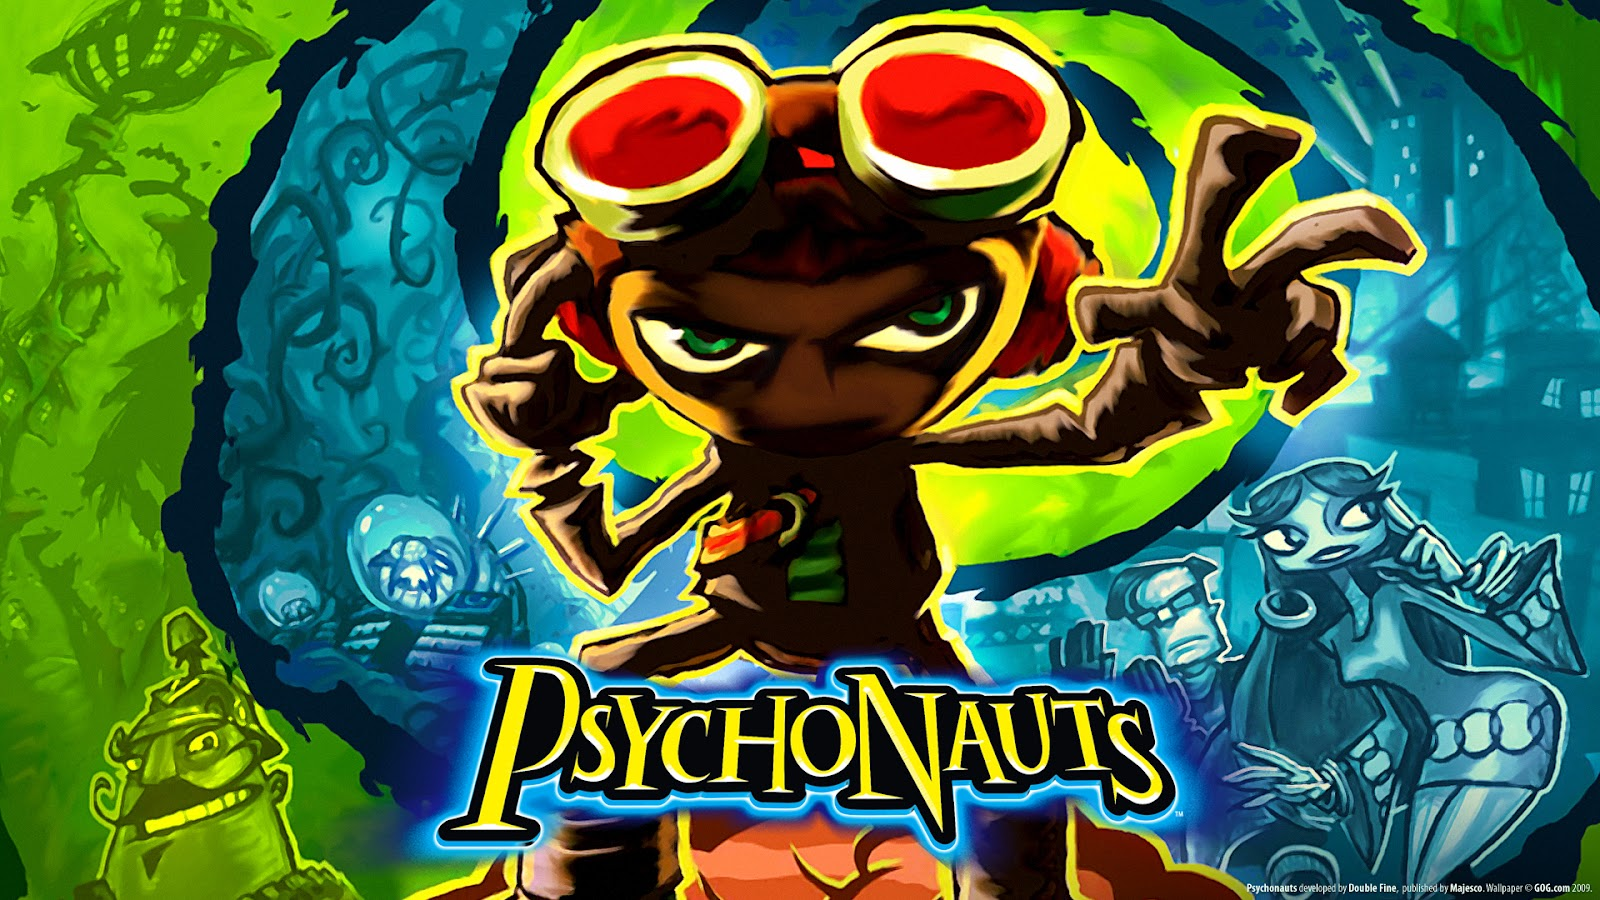 BlurryPhoenix Reflects: Psychonauts